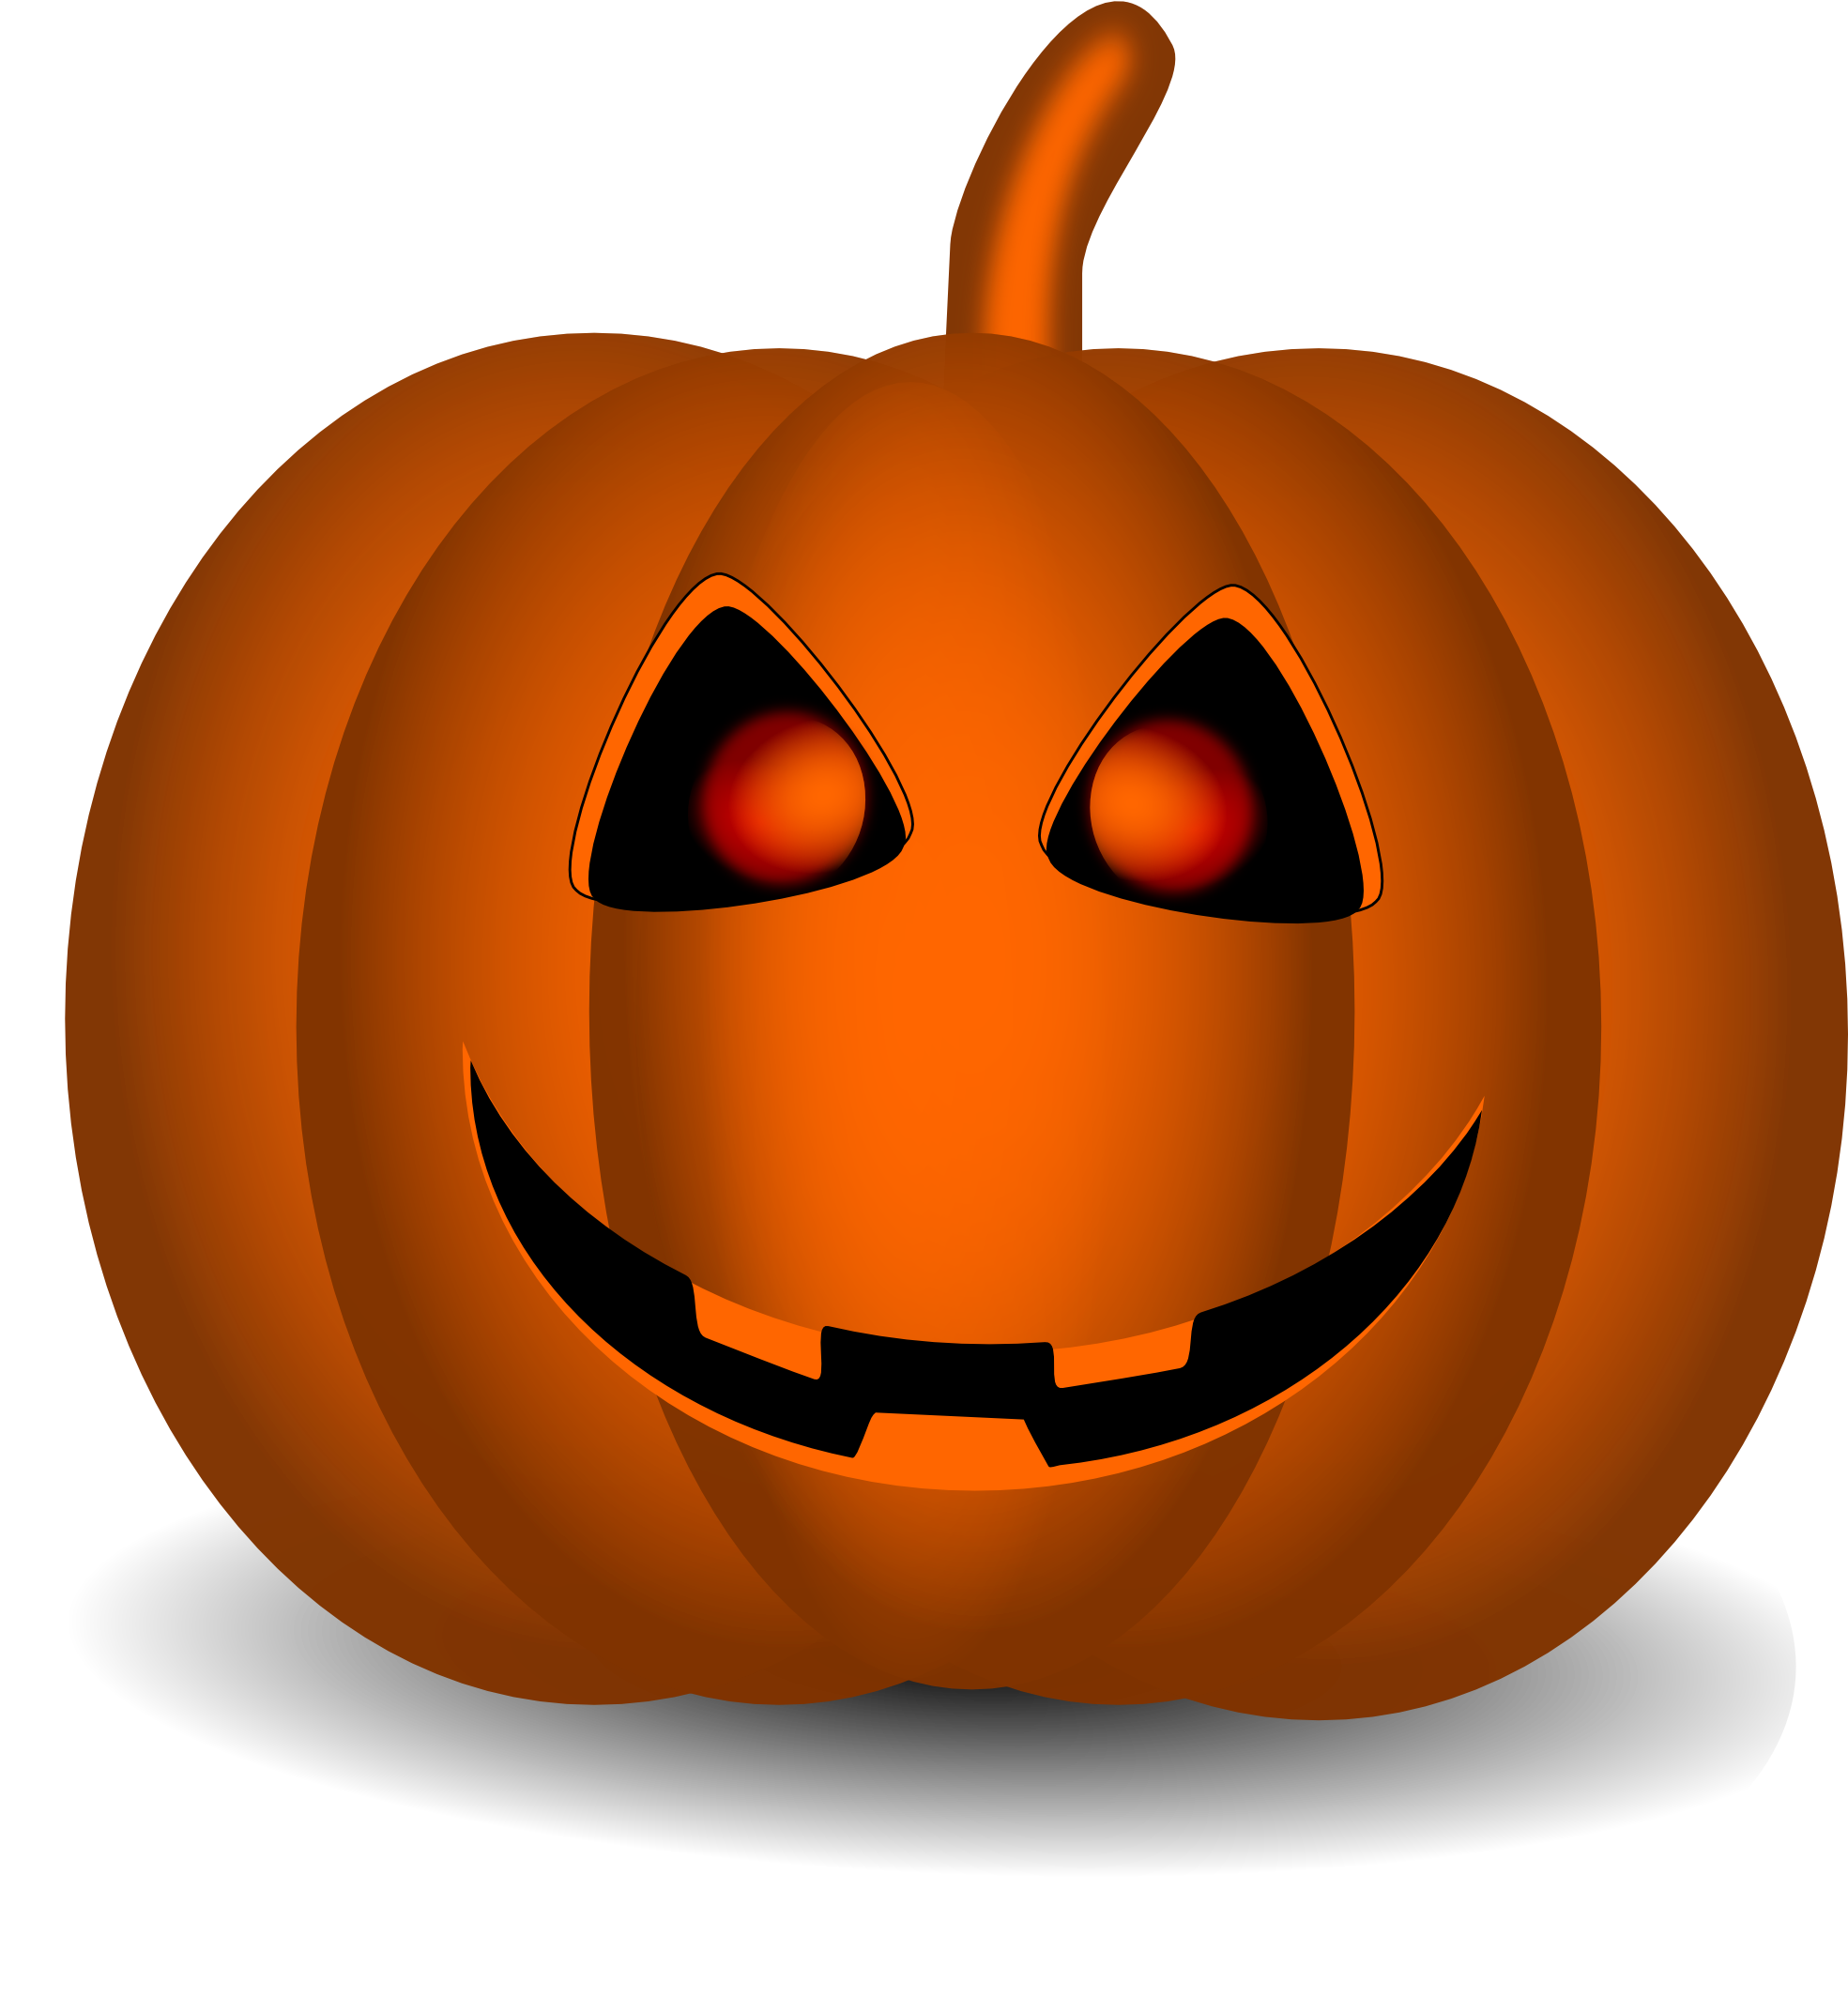 Download Vector Png Halloween Free image #26485